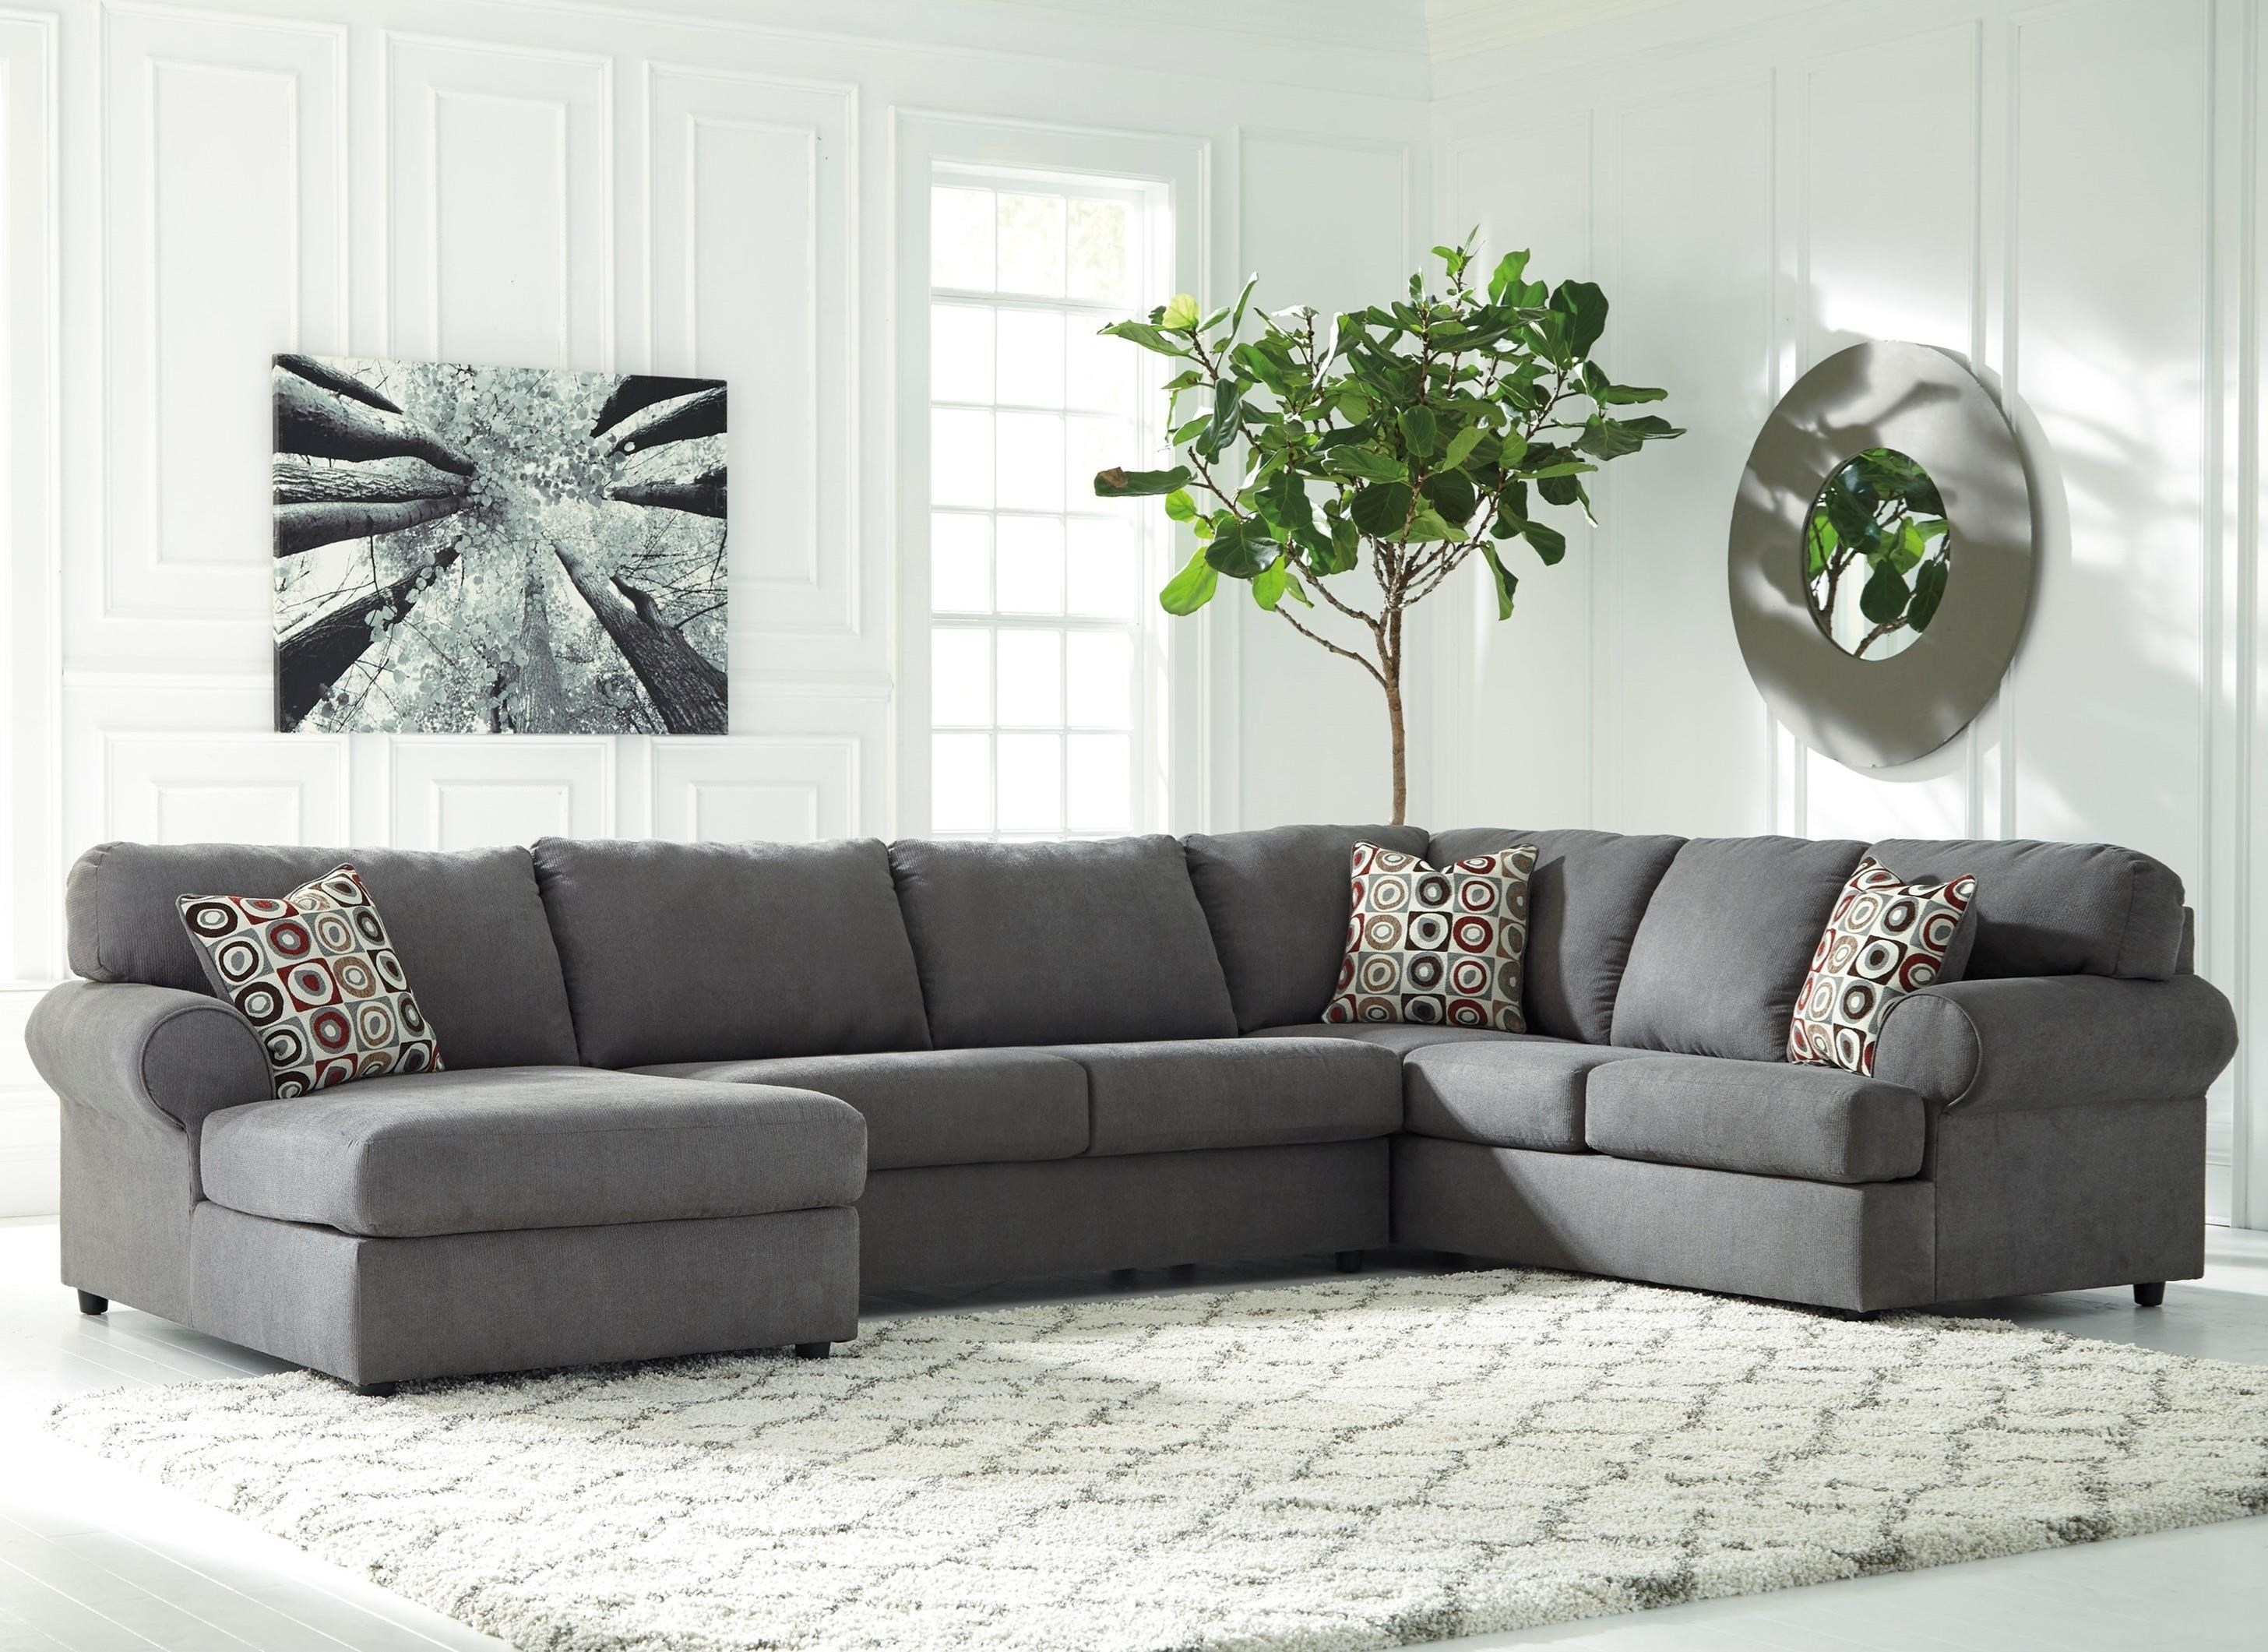 Ashley (Signature Design) Jayceon 3 Piece Sectional With Left Chaise Throughout Cosmos Grey 2 Piece Sectionals With Laf Chaise (View 19 of 25)